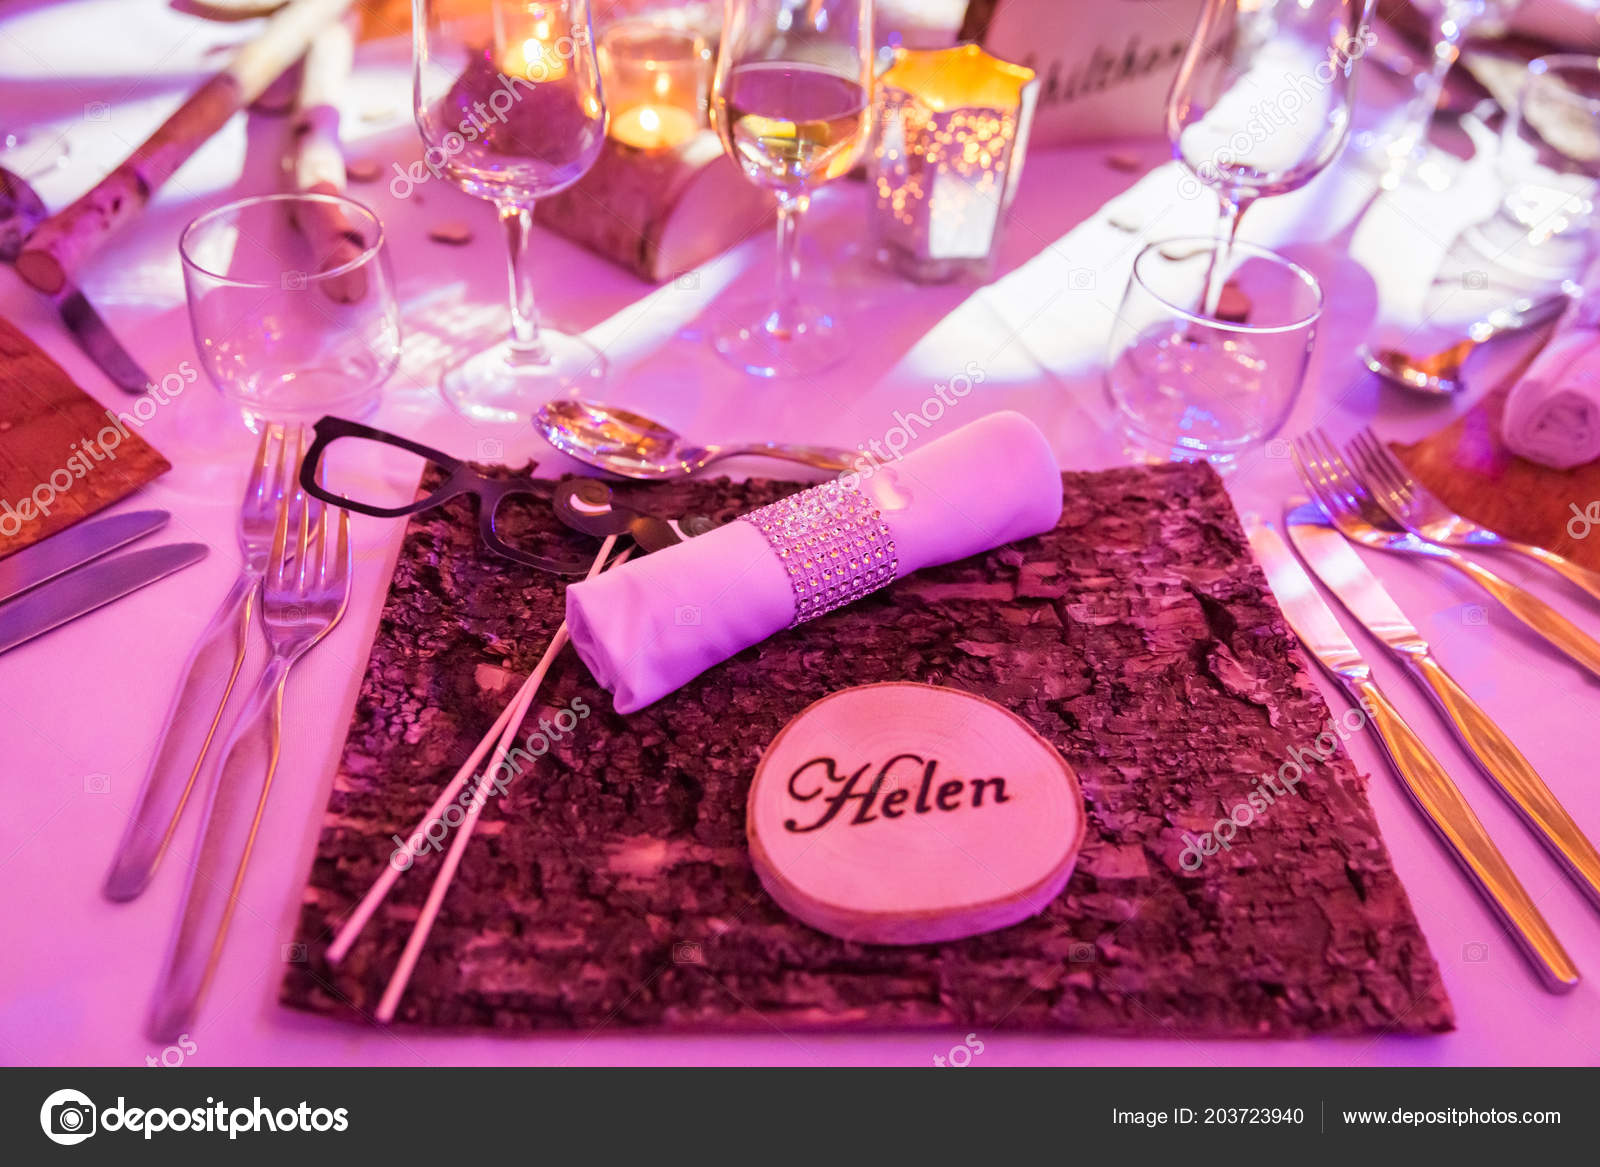 Helen Wedding Name Tag Wooden Table Decoration — Stock Photo ...